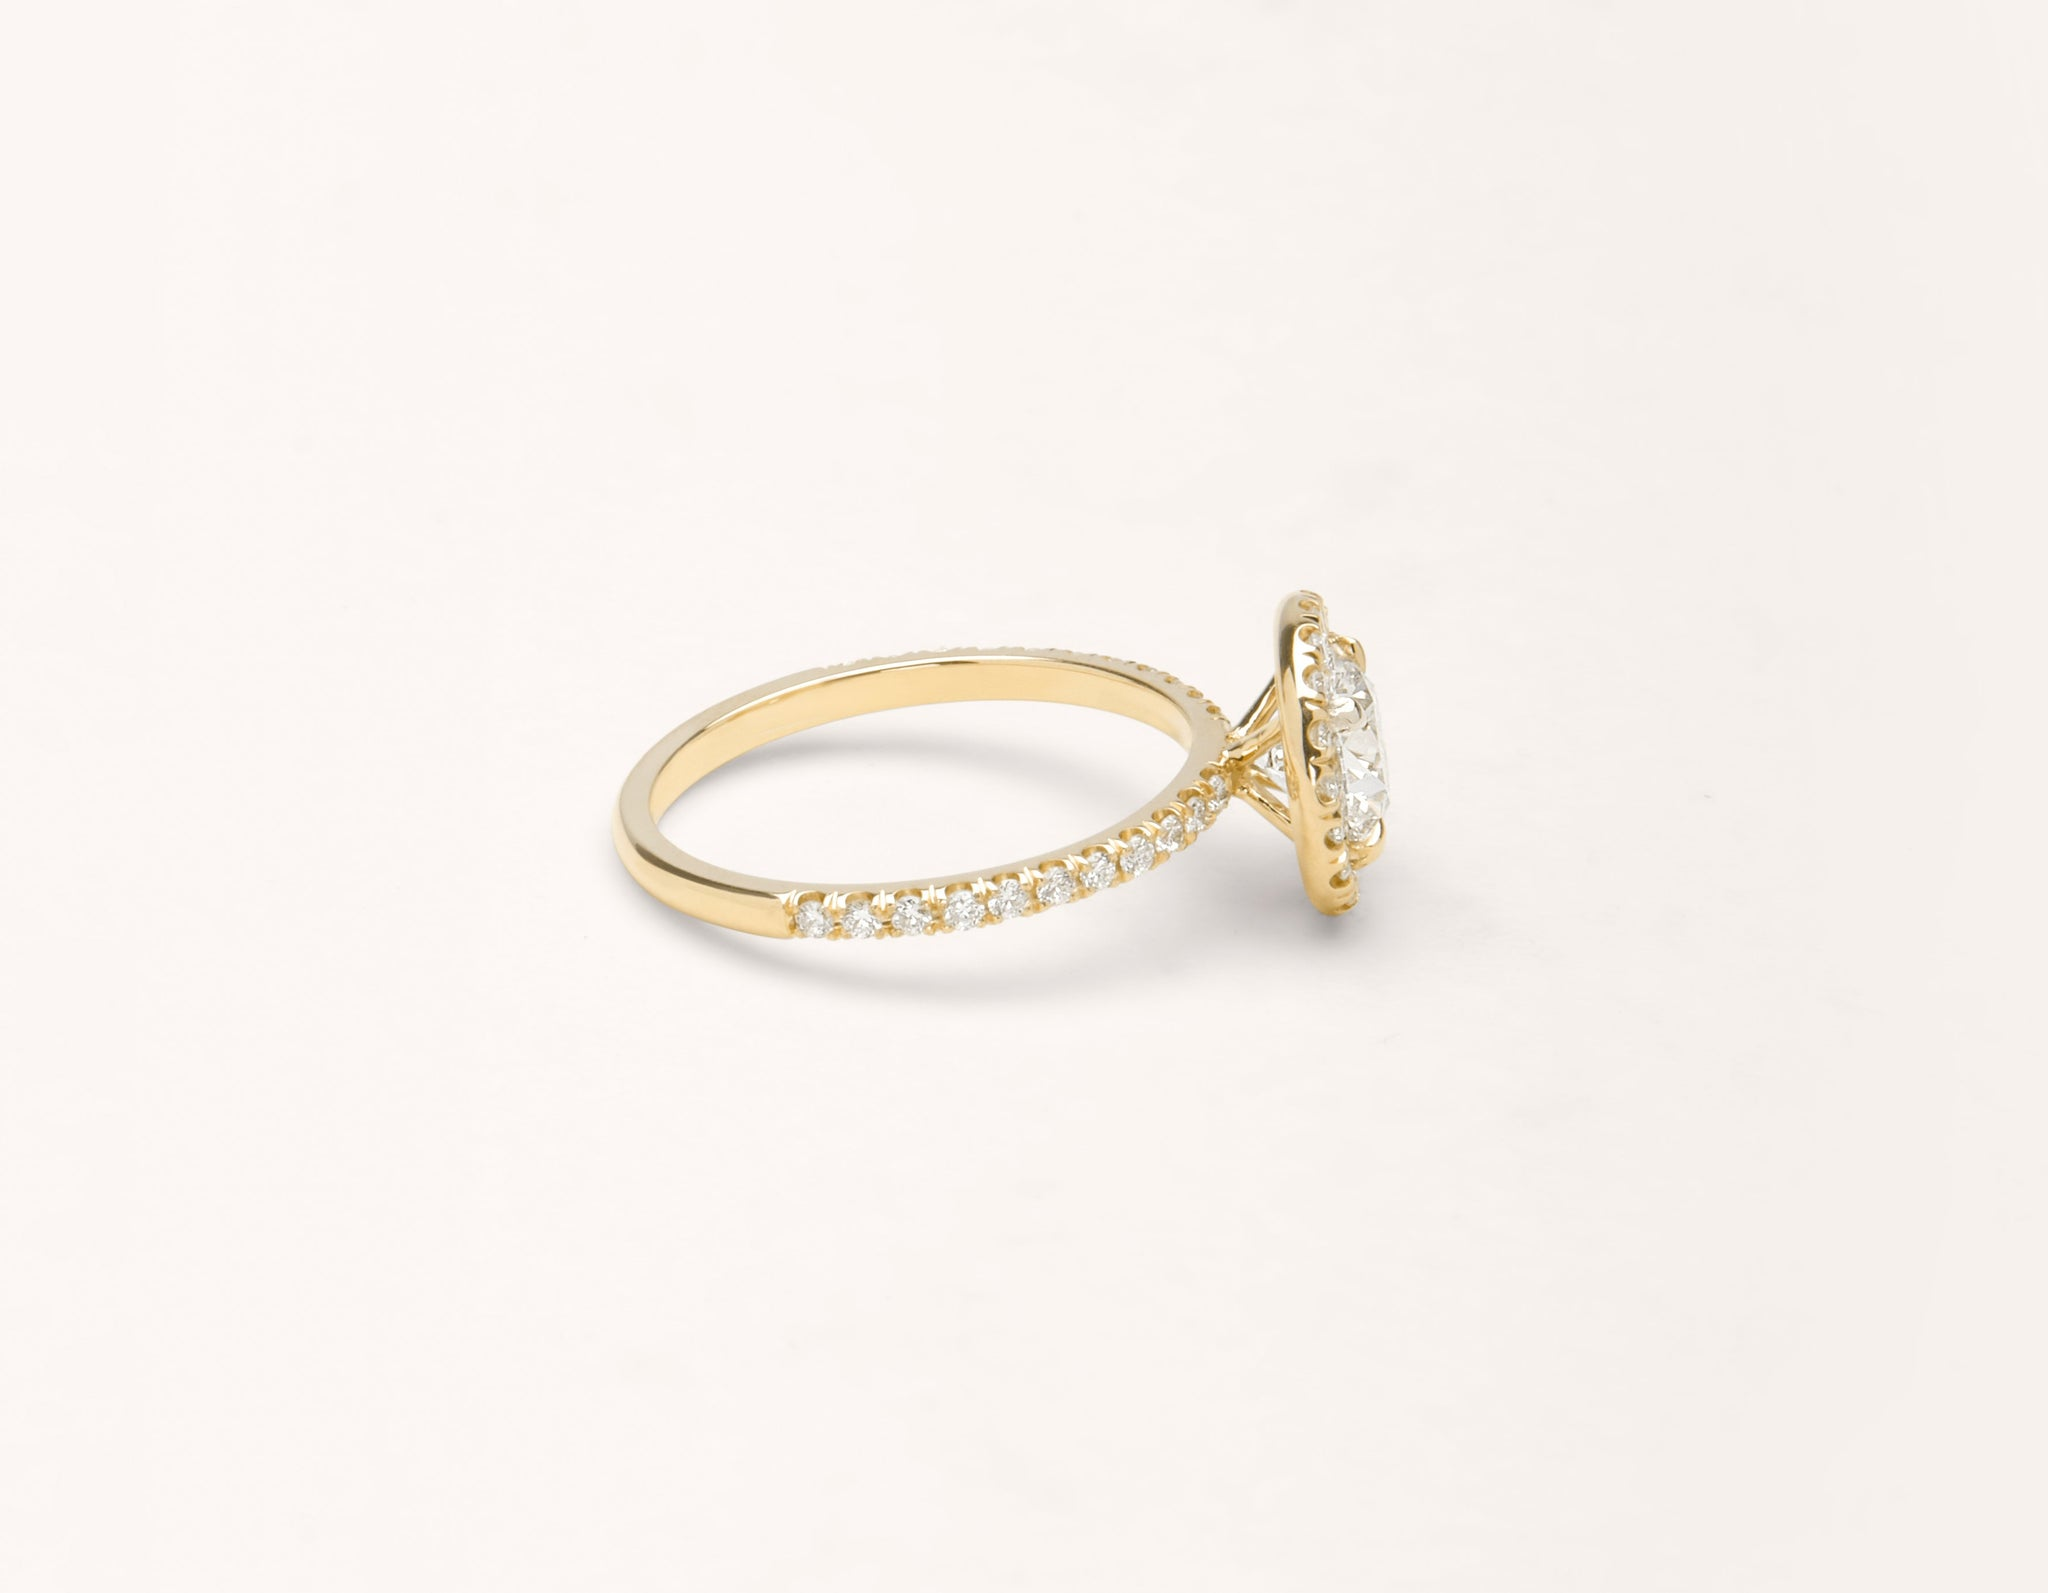 Simple modern 18k solid yellow gold 1 carat Halo diamond pave engagement ring Vrai & Oro